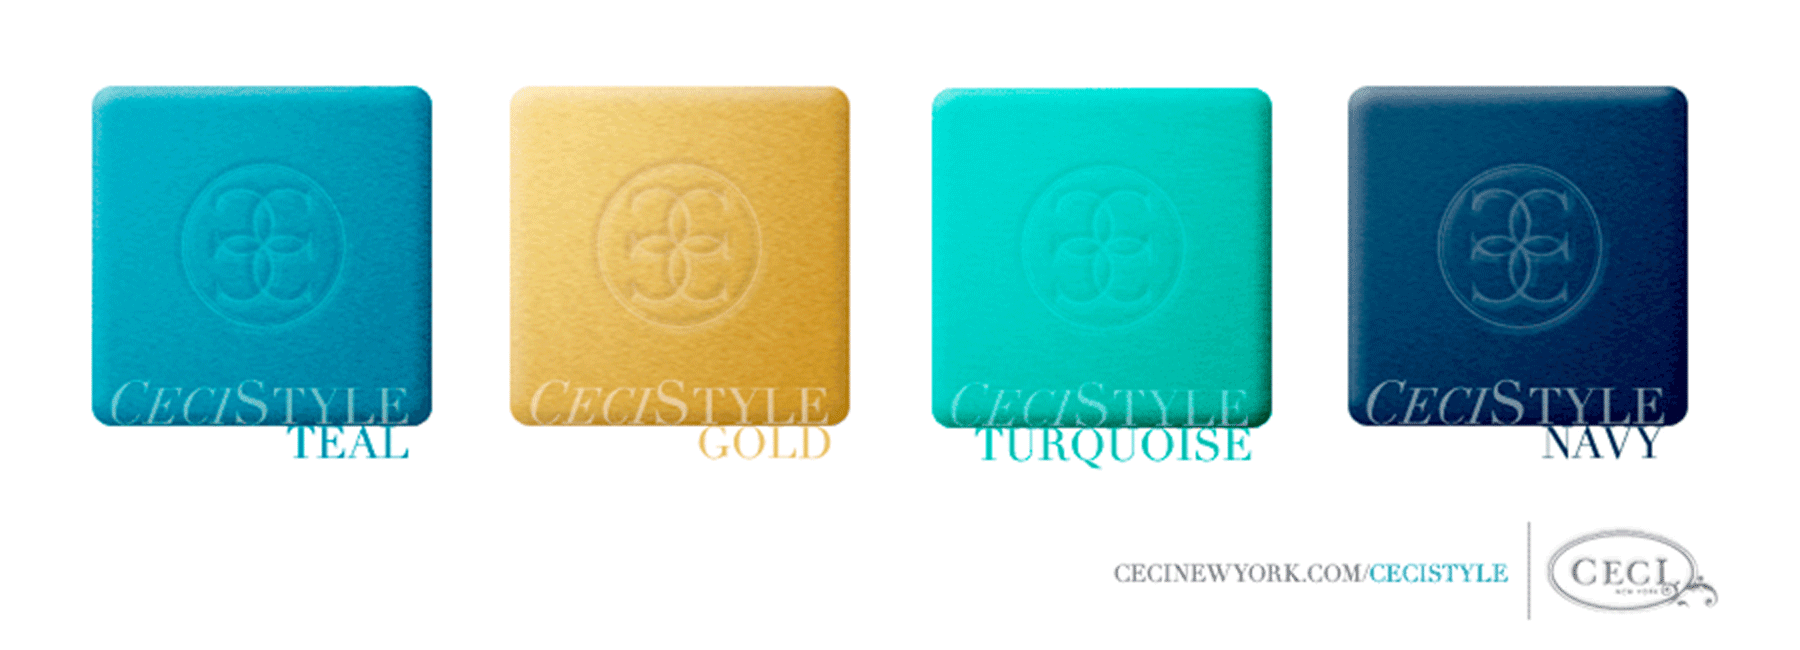 Ceci's Color Stories - Teal & Gold Wedding Colors - color swatches, teal, gold, navy, turquoise, bat mitzvah, color, swatches